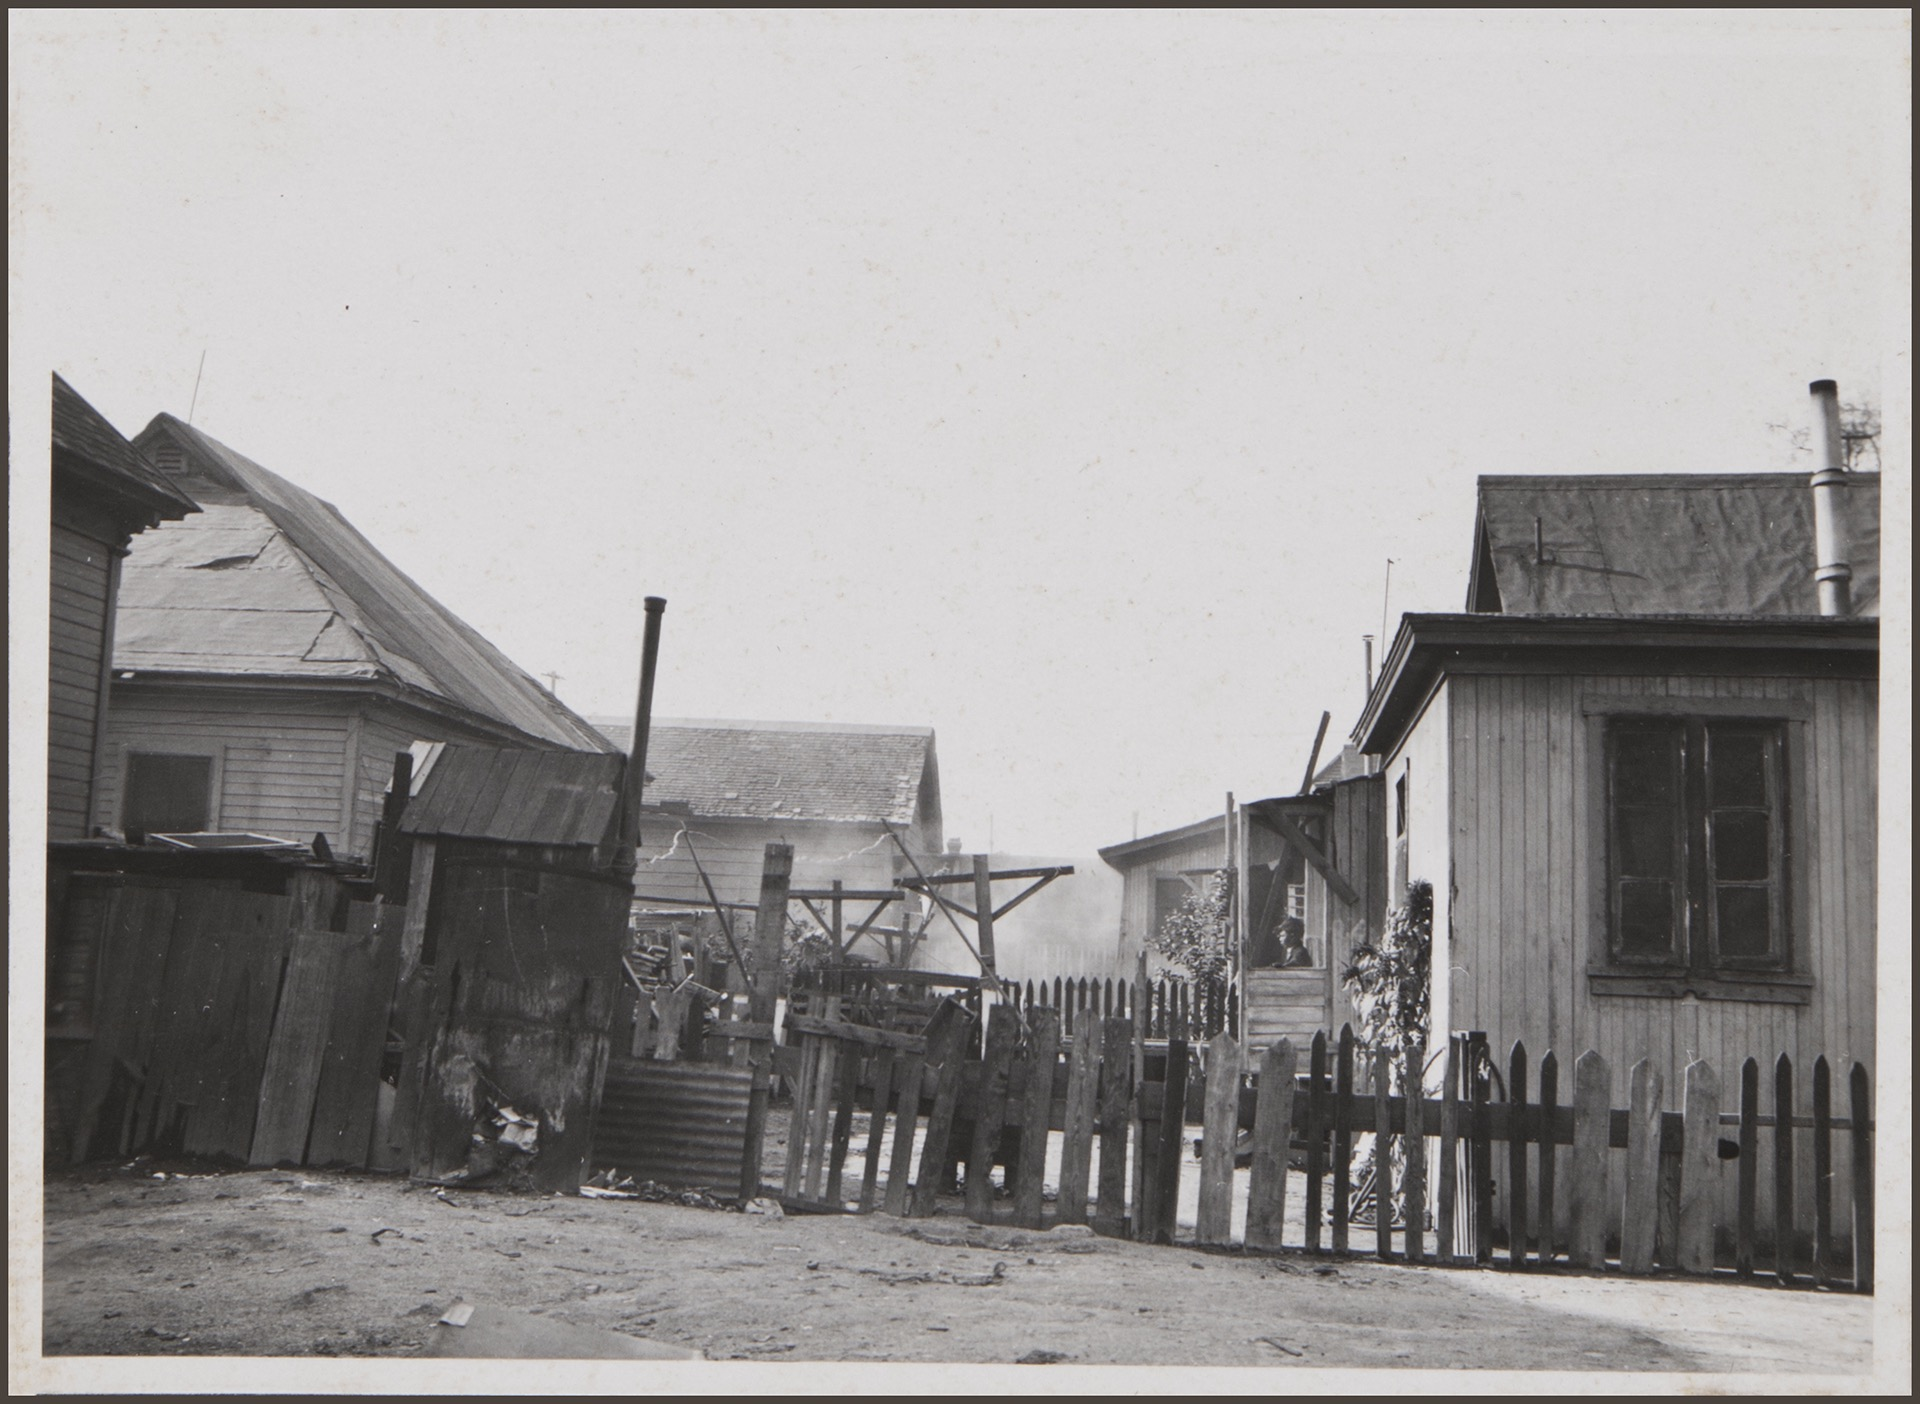 Slums on Hewitt Street. Los Angeles: 1932-33 by Anton Wagner, PC 17, California Historical Society.